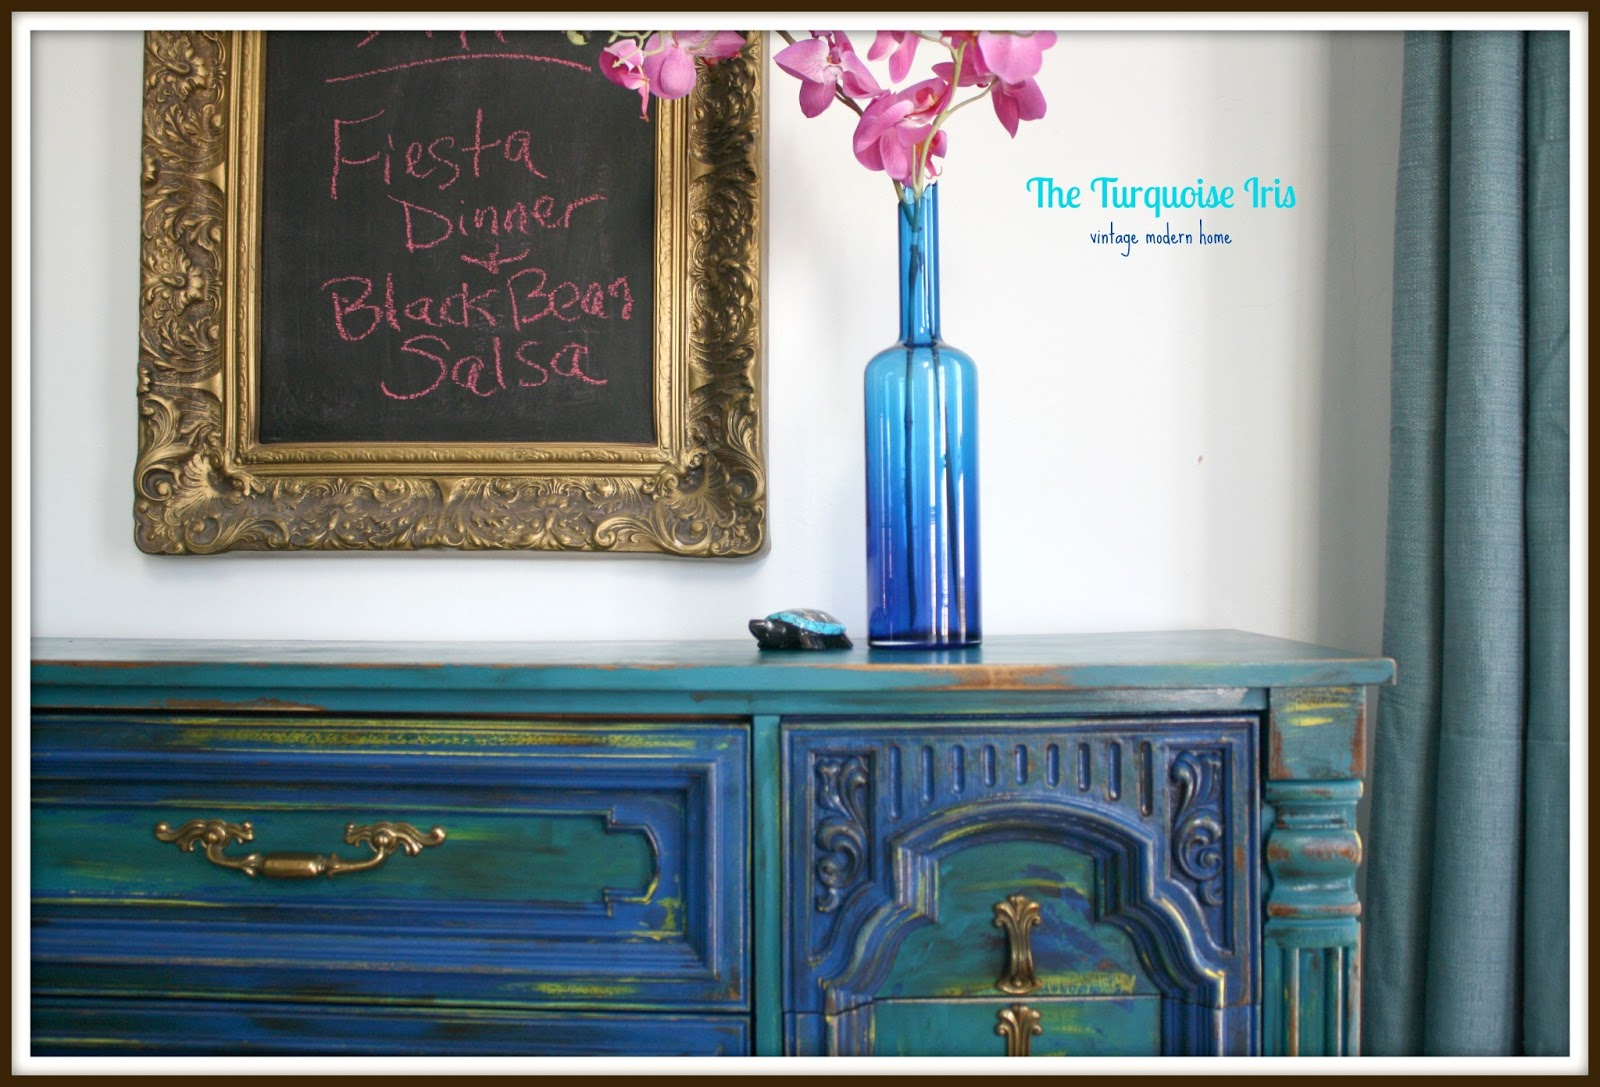 The Turquoise Iris Furniture Art Teal and Cobalt Blue